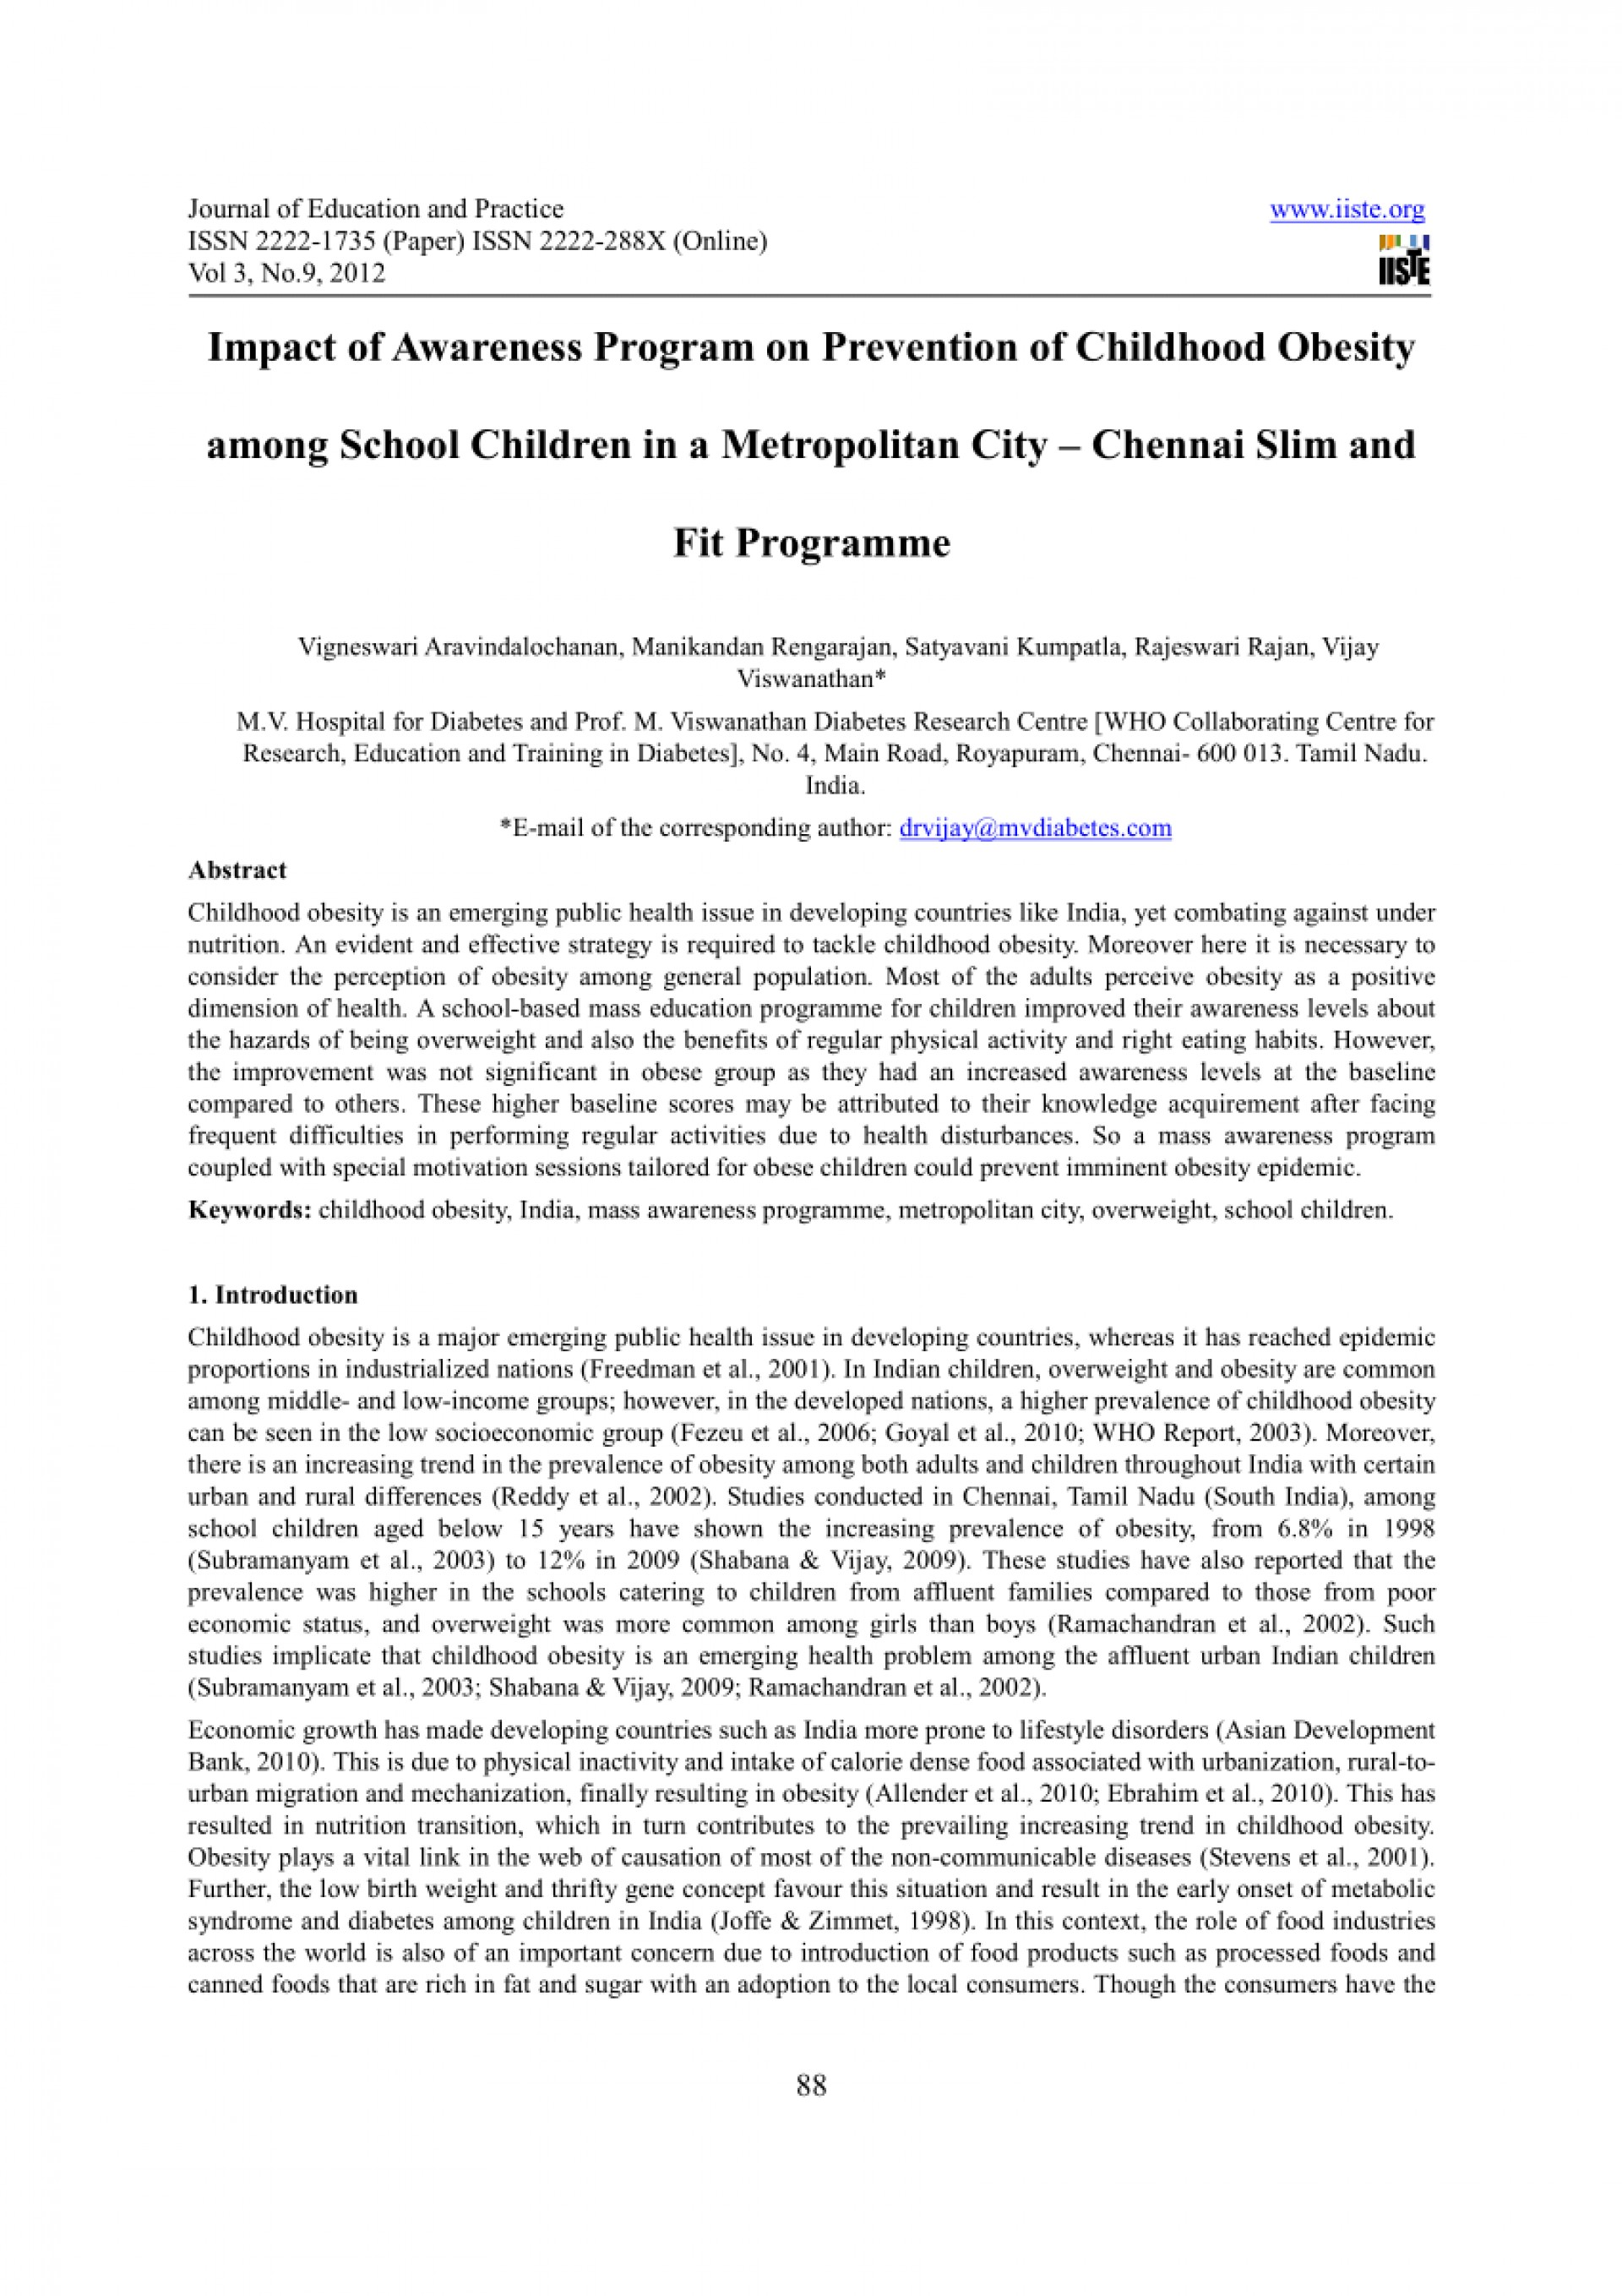 015 Research Paper Childhood Obesity Papers Unusual Thesis Statement Articles Abstract 1920